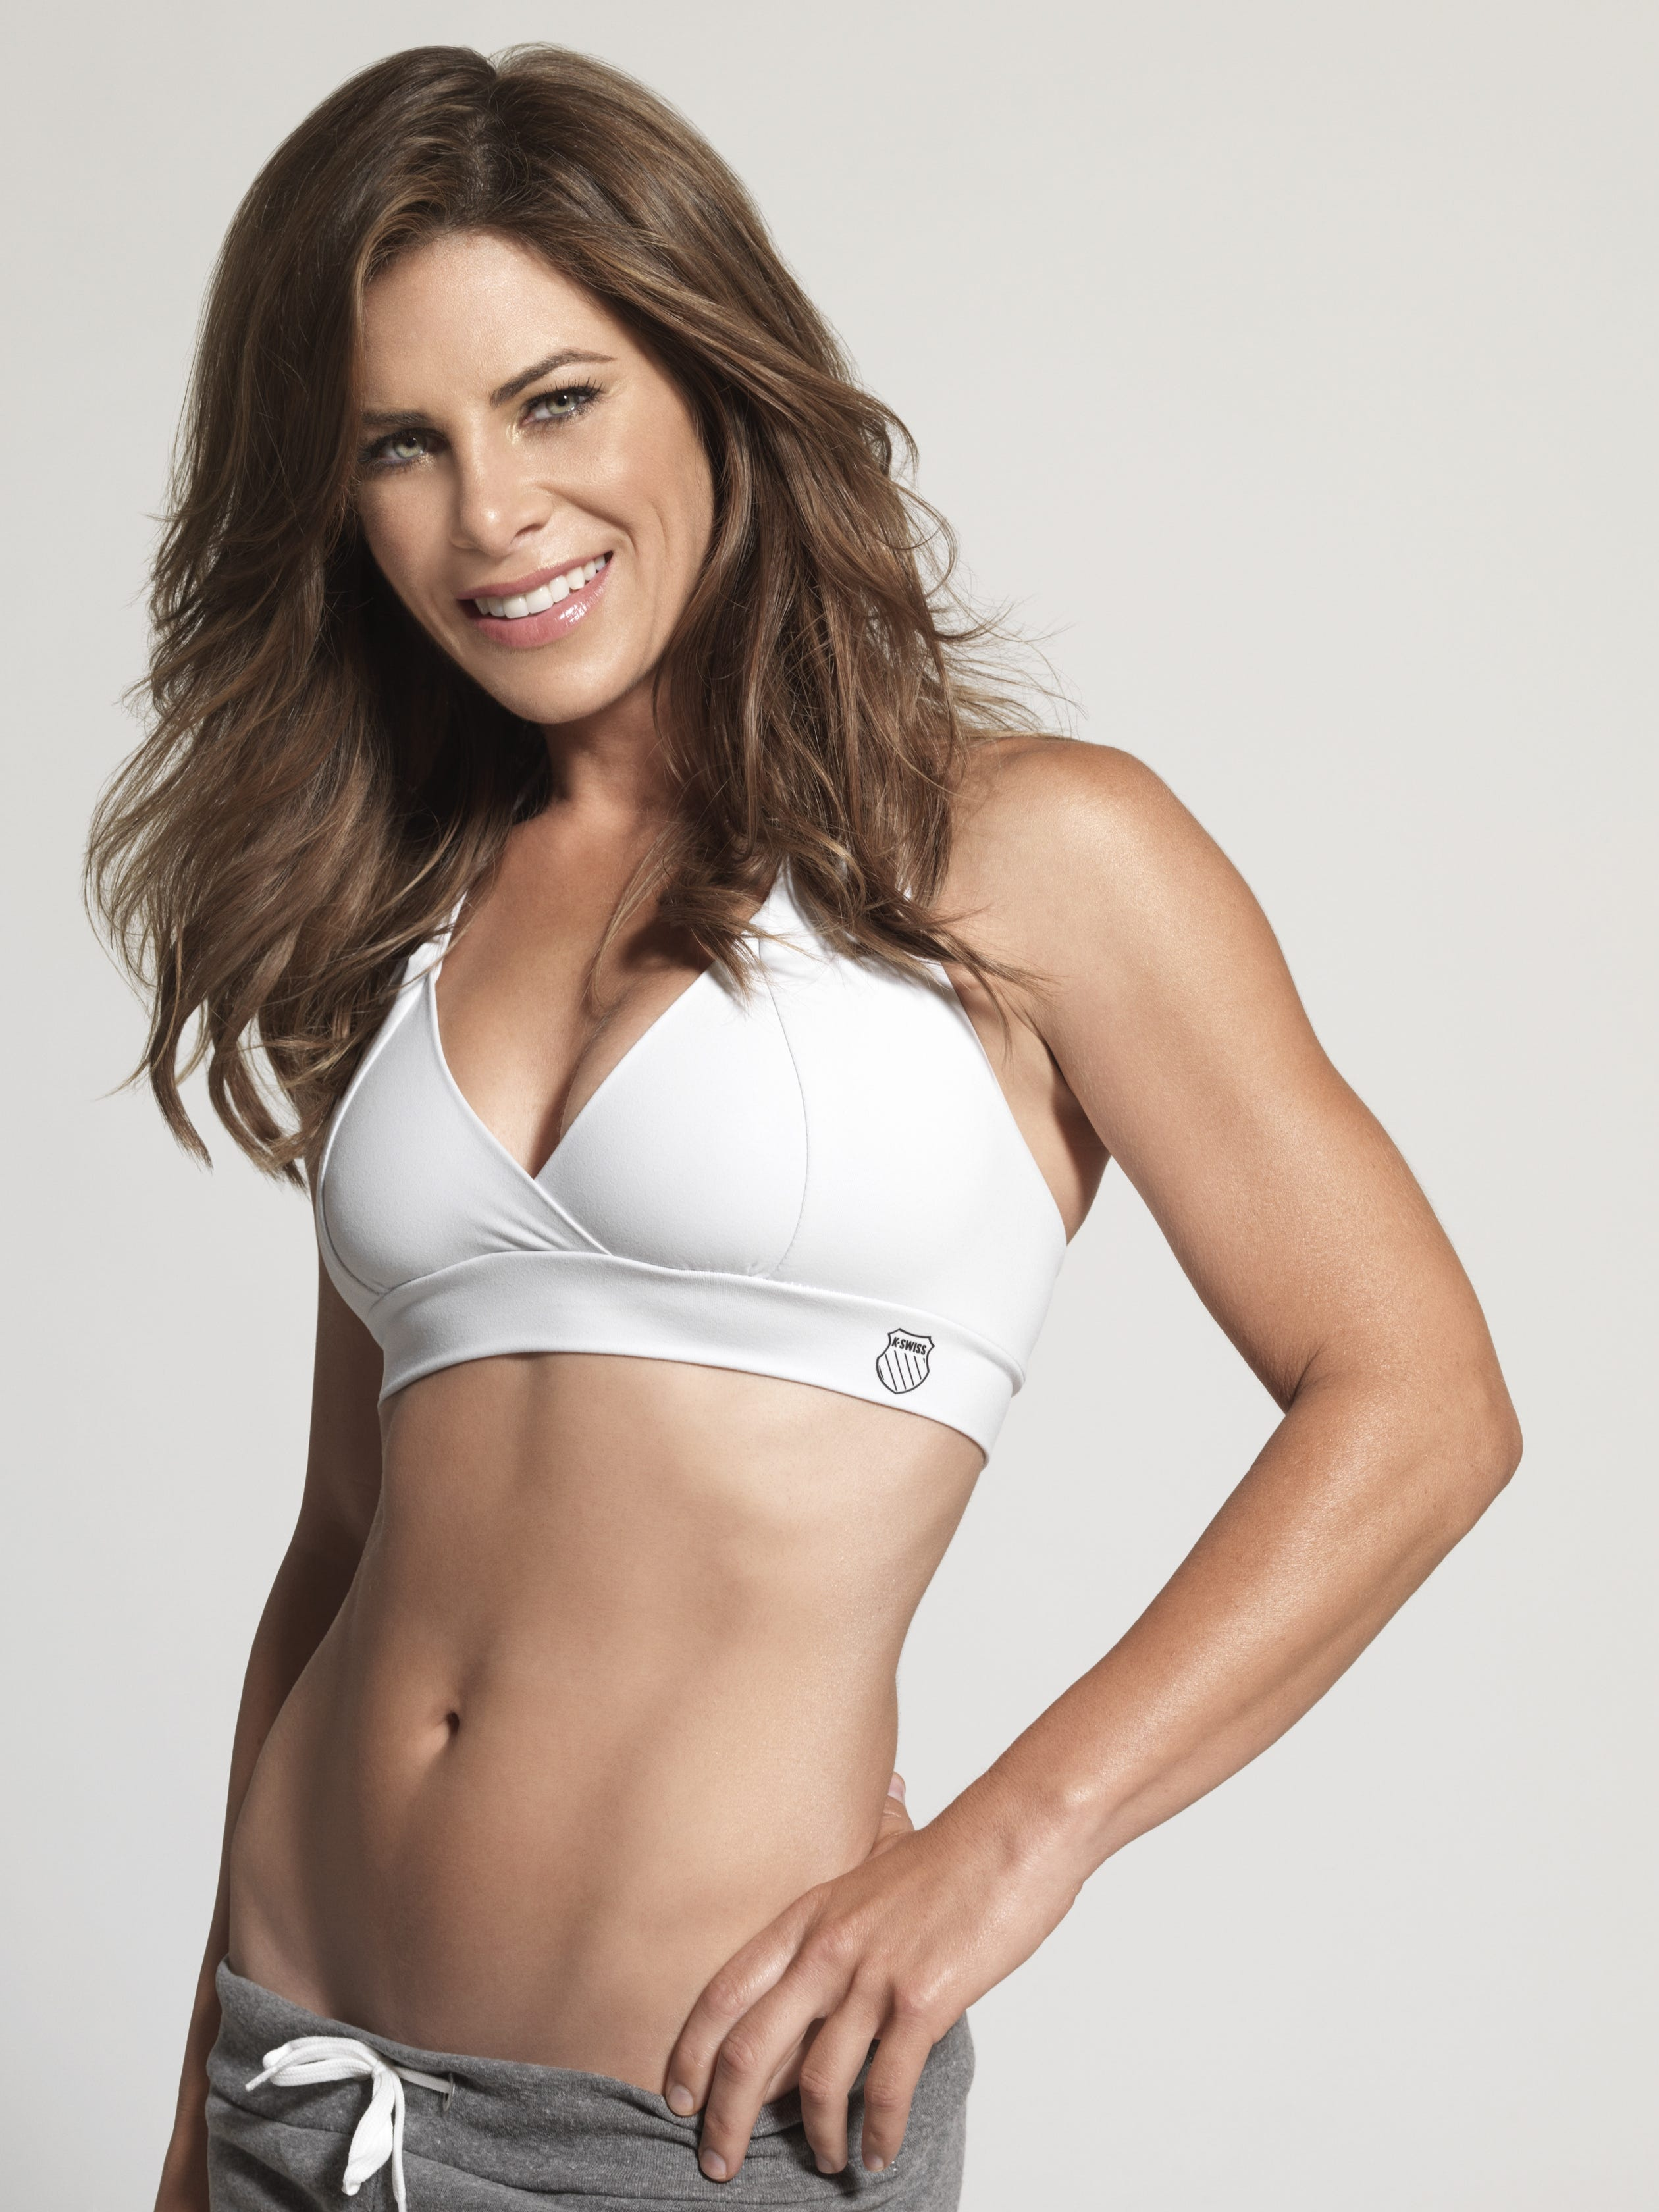 nude Jillian Michaels (49 images) Leaked, YouTube, braless